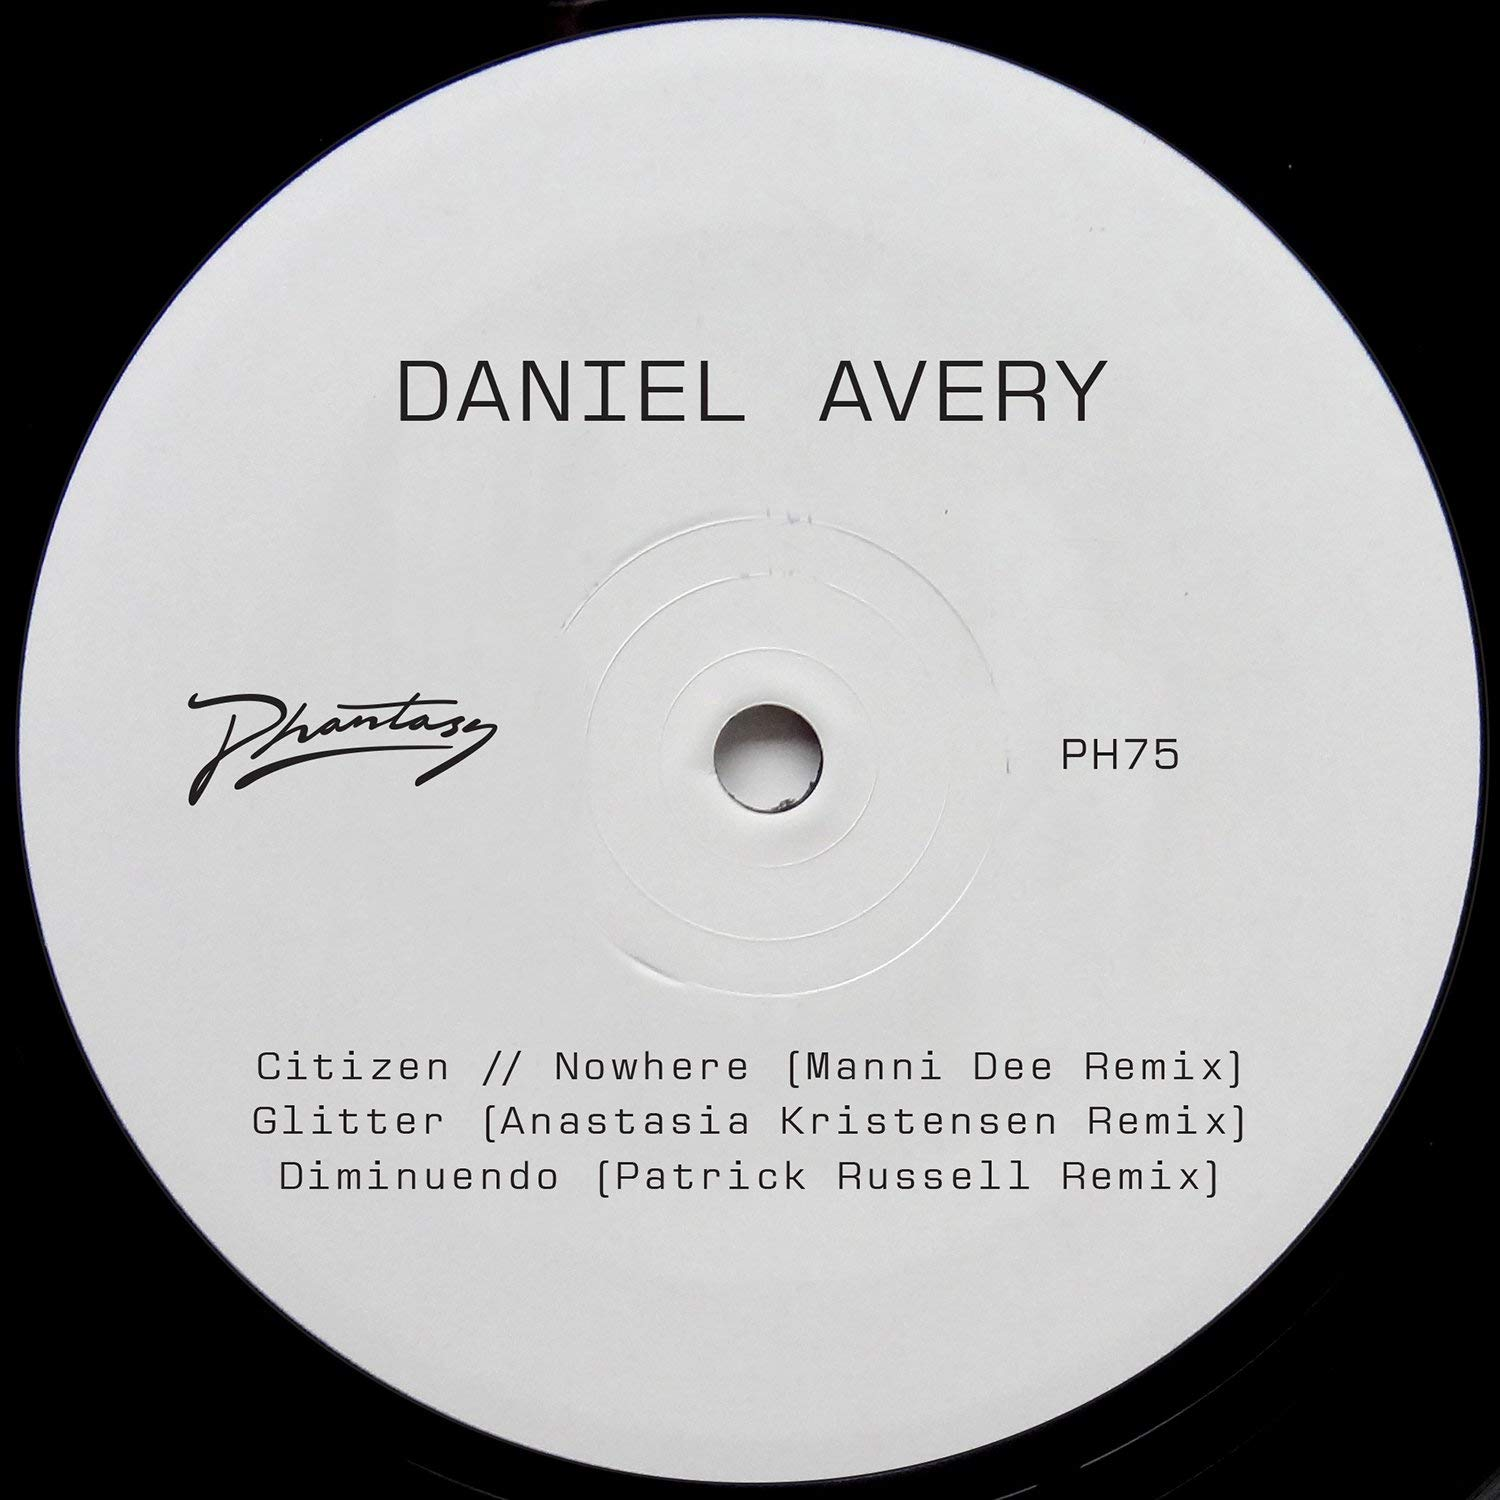 Daniel Avery - Song For Alpha Remixes - One EP [Import Vinyl]